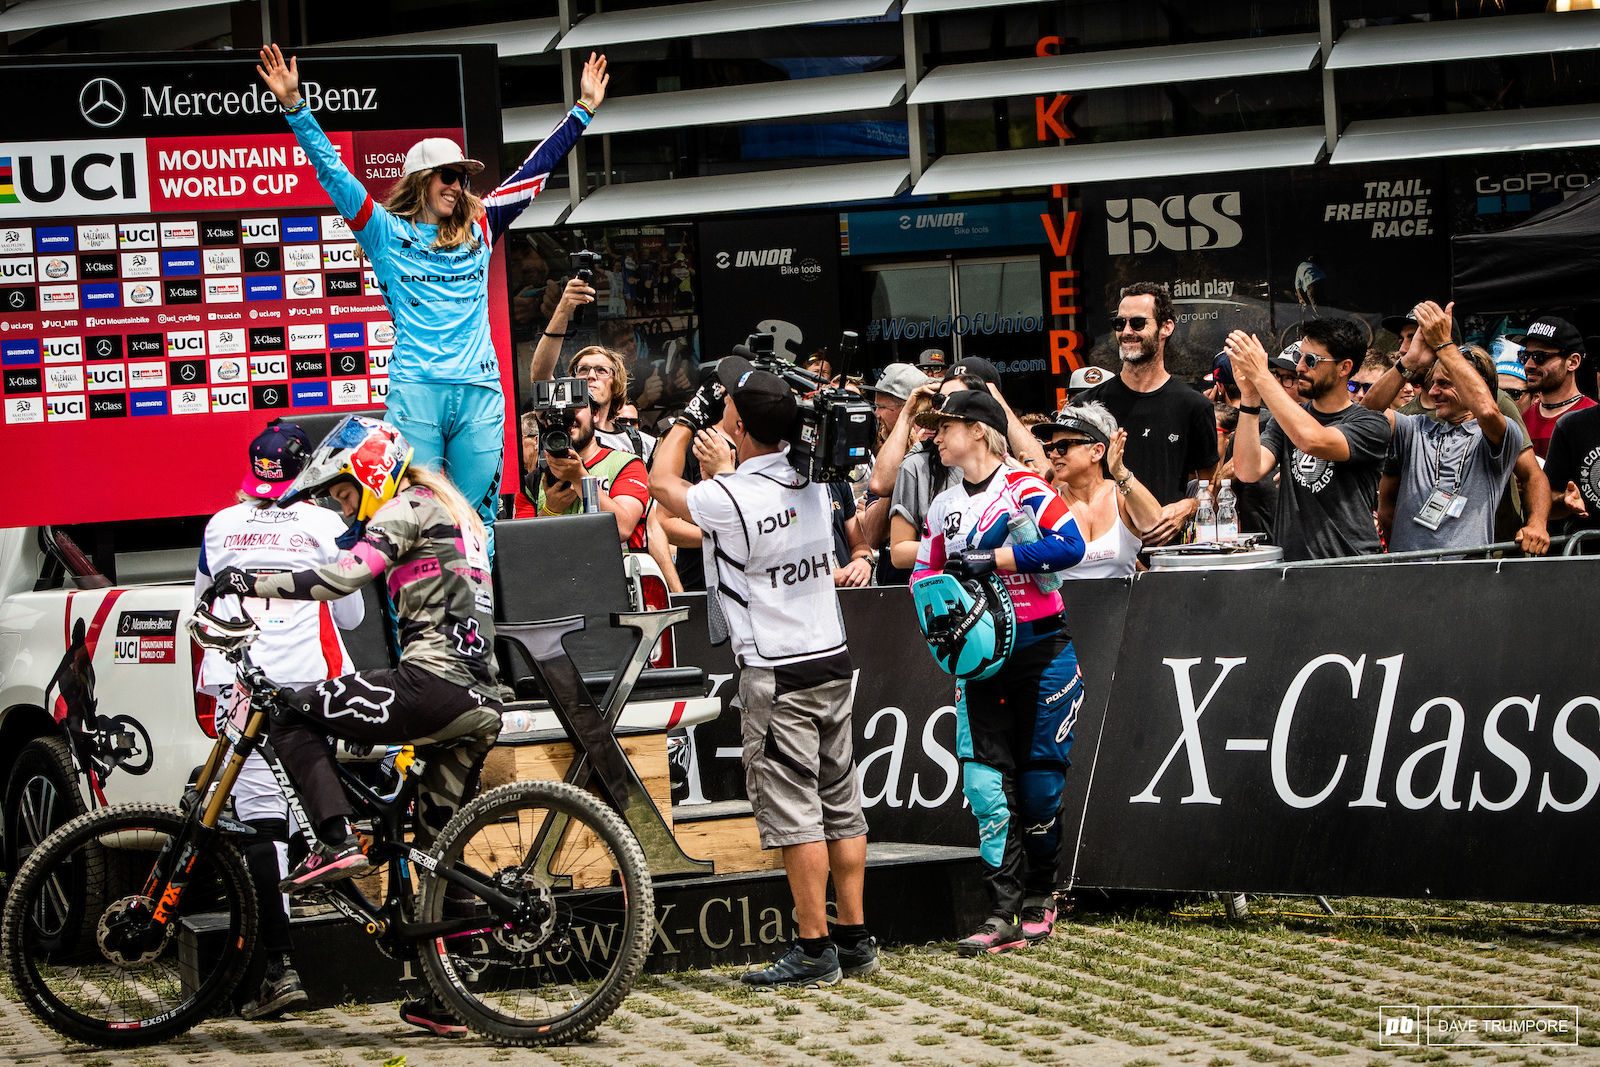 A long time coming. Rachel Atherton gets her revenge after rough one last week in Fort William and takes the win here in Leogang.